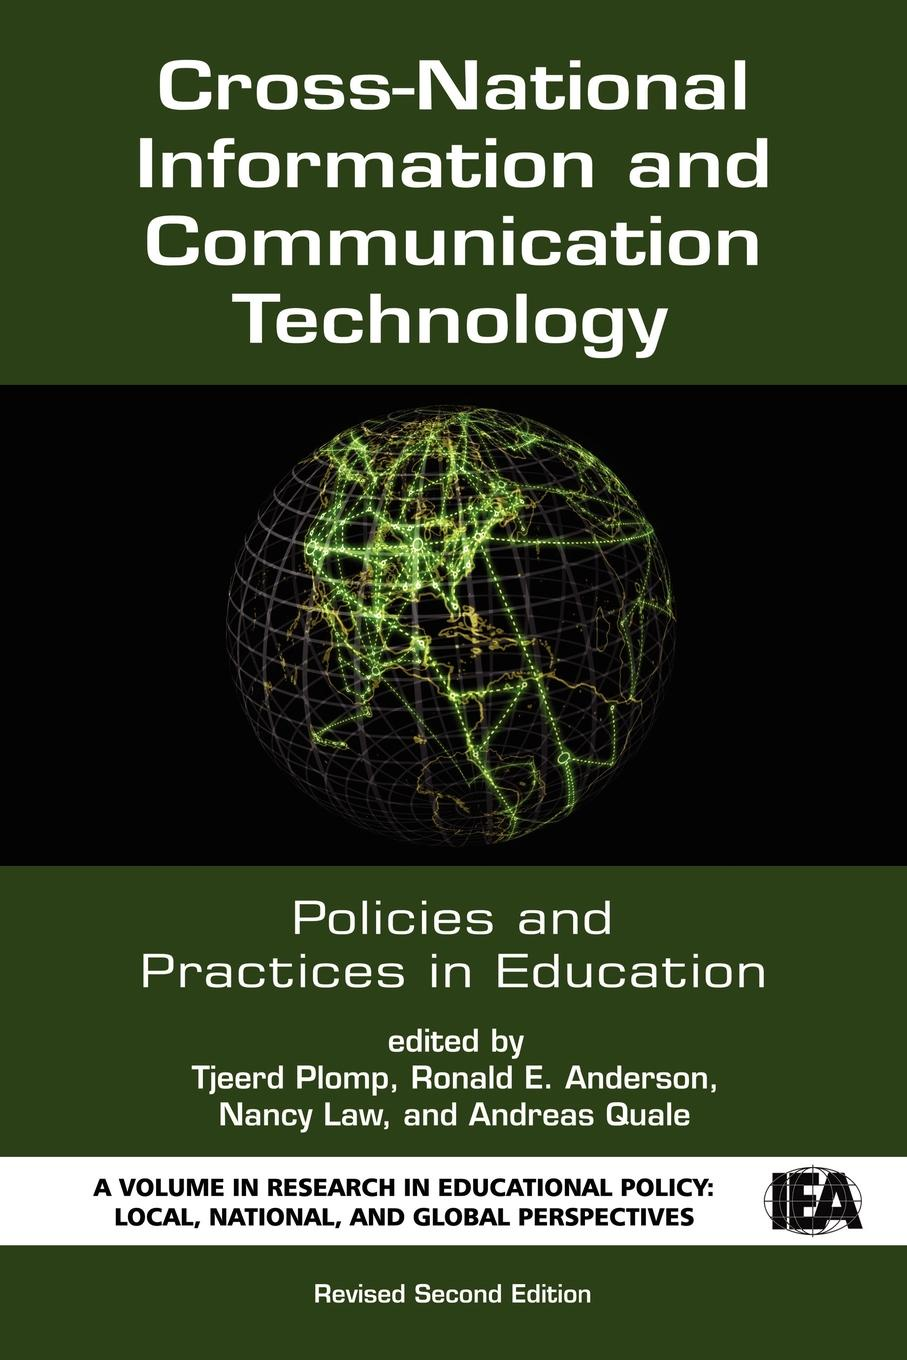 Cross-National Information and Communication Technology Policies and Practices in Education (Revised Second Edition) (PB) cross national information and communication technology policies and practices in education revised second edition pb